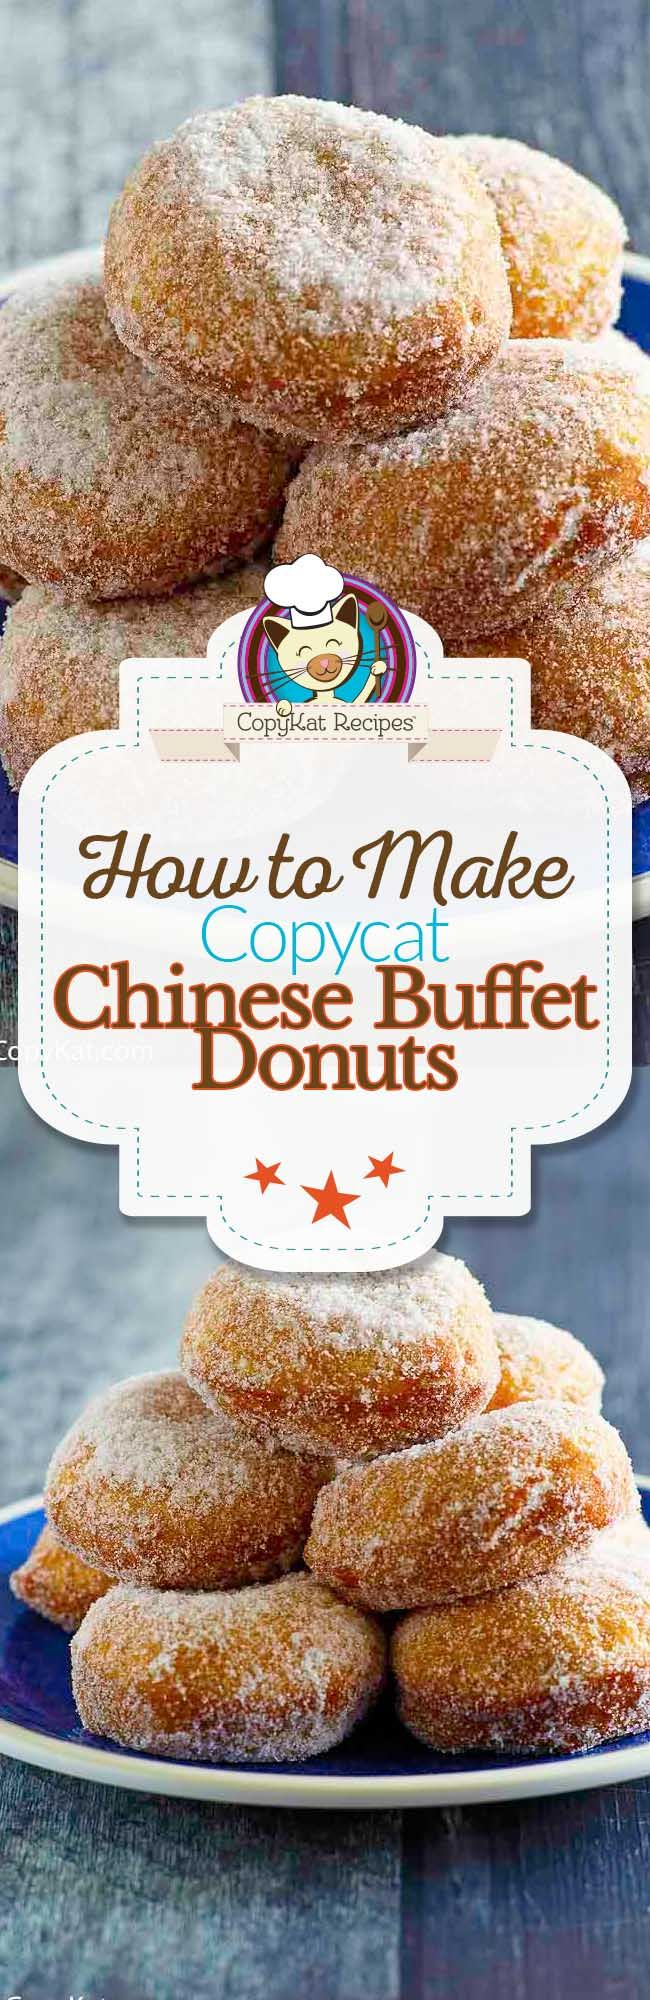 You can recreate Chinese Buffet Style Donuts with this cpoycat recipe.